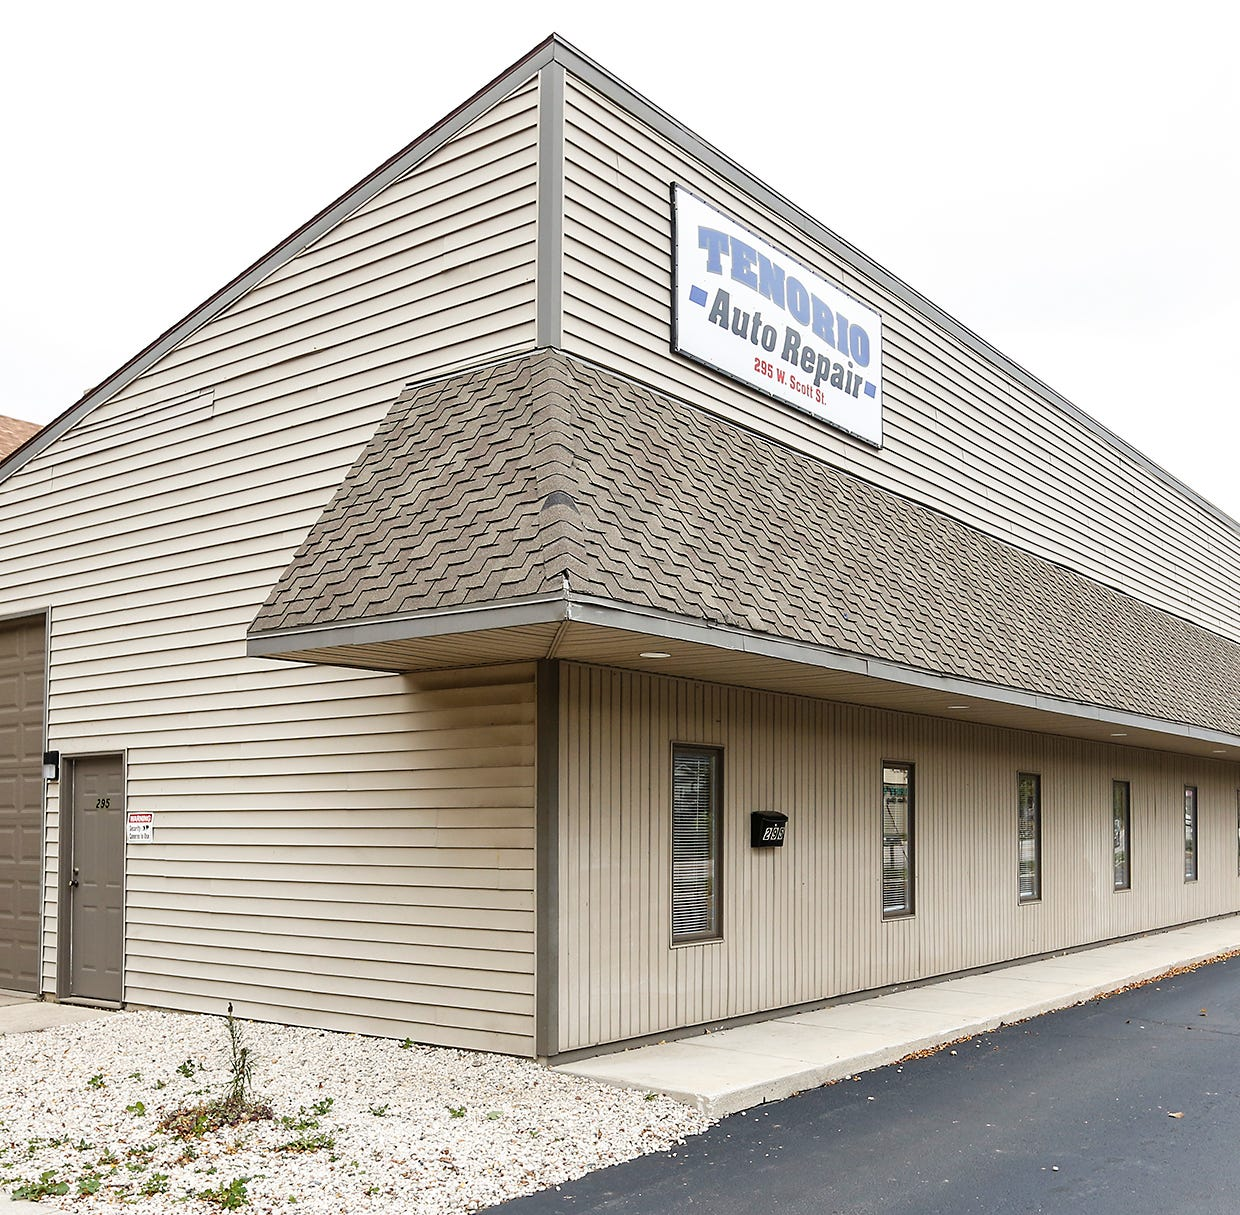 Tenorio Auto Repair opens on Fond du Lac's north side |Streetwise